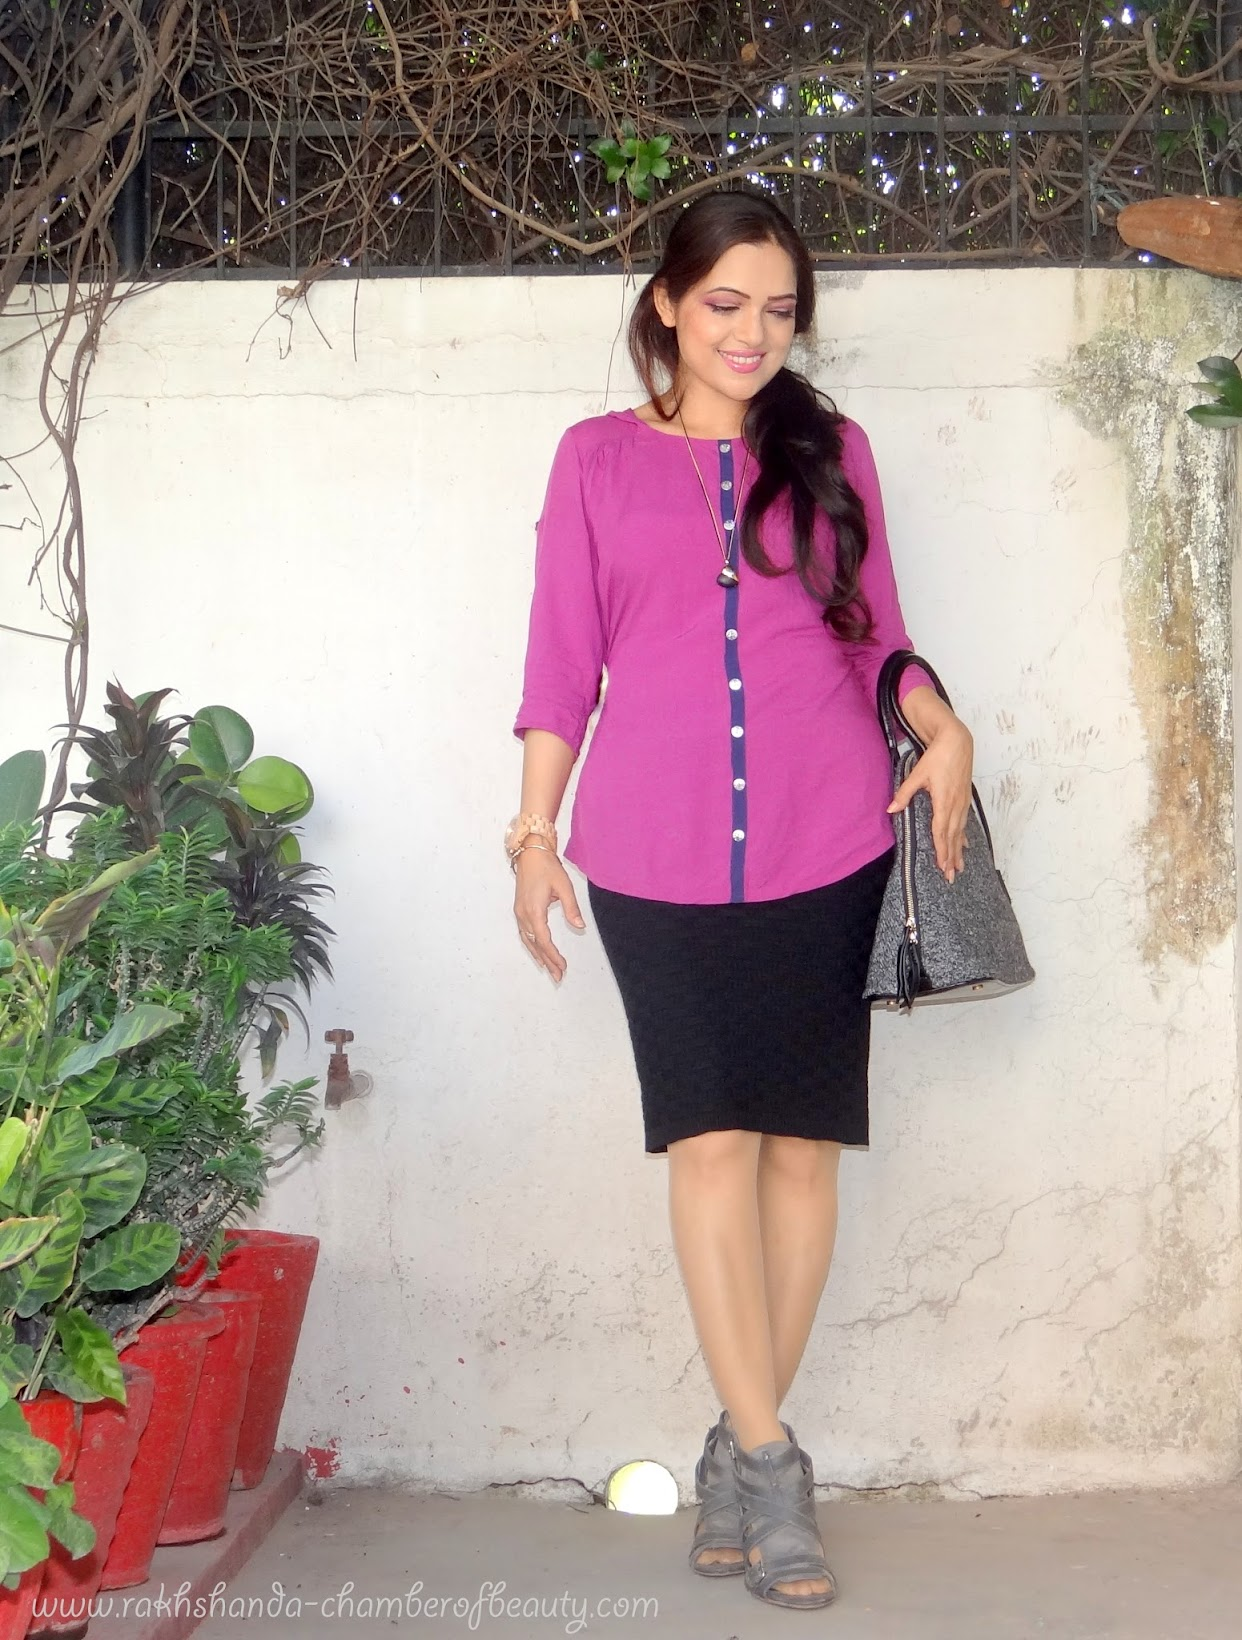 Orchid & Black | How to style a pencil skirt, fashion, OOTD, Outfit of the day, Qupid heels, Jord wood watches, Indian fashion blogger